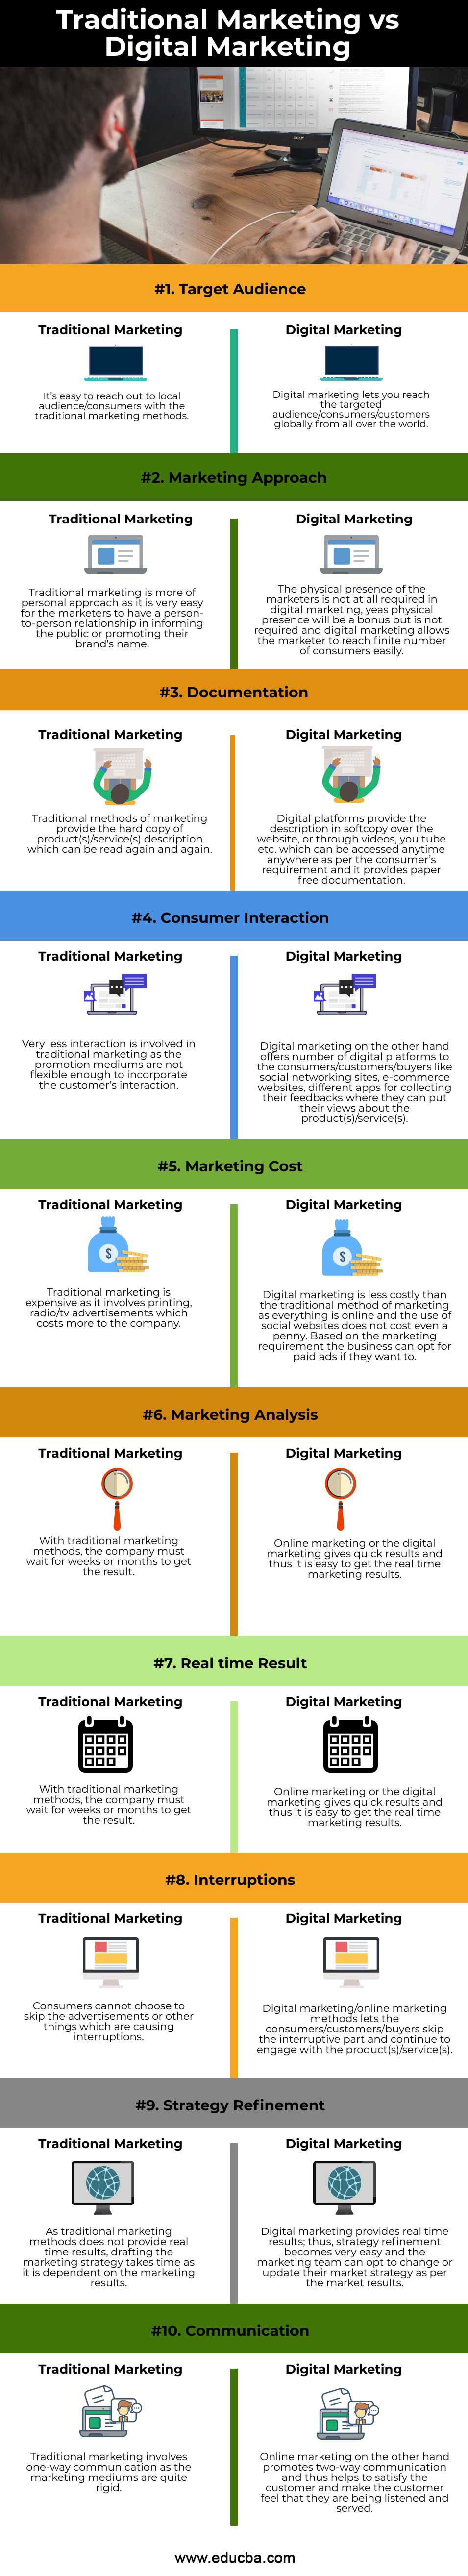 Traditional-Marketing-vs-Digital-Marketing-info